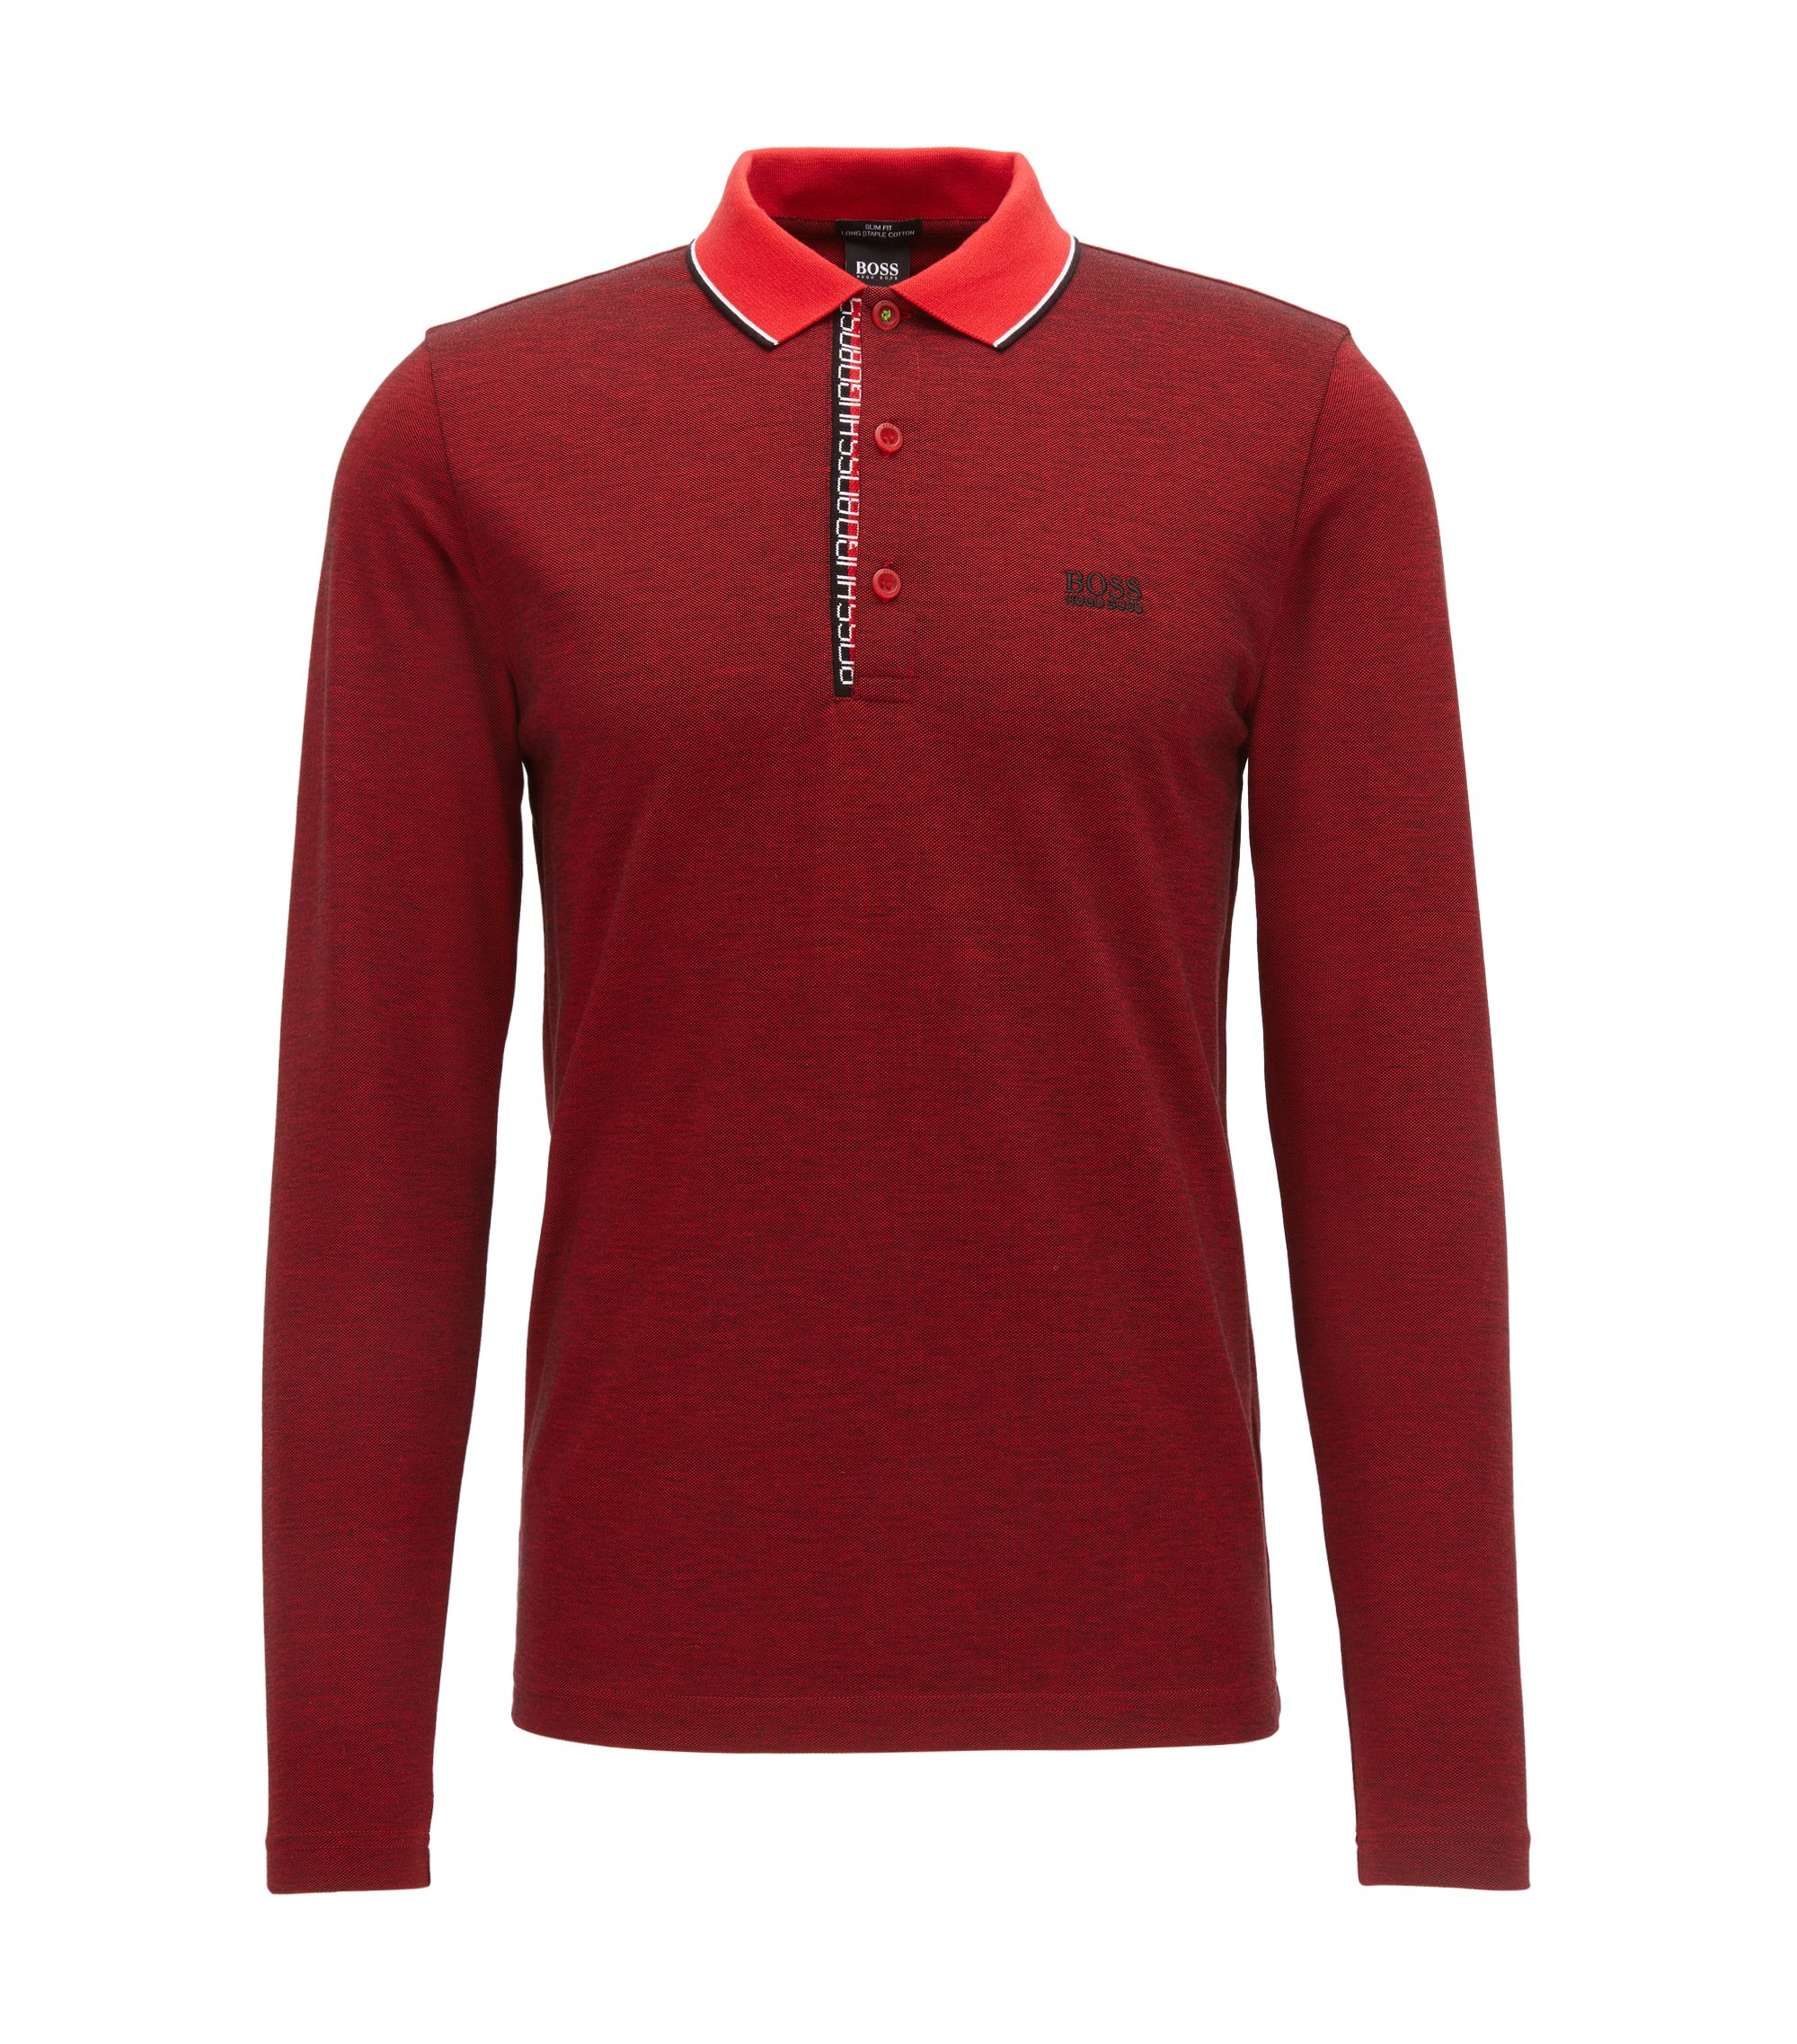 Contrast Cotton Polo Shirt, Slim Fit | Pleesy, Red